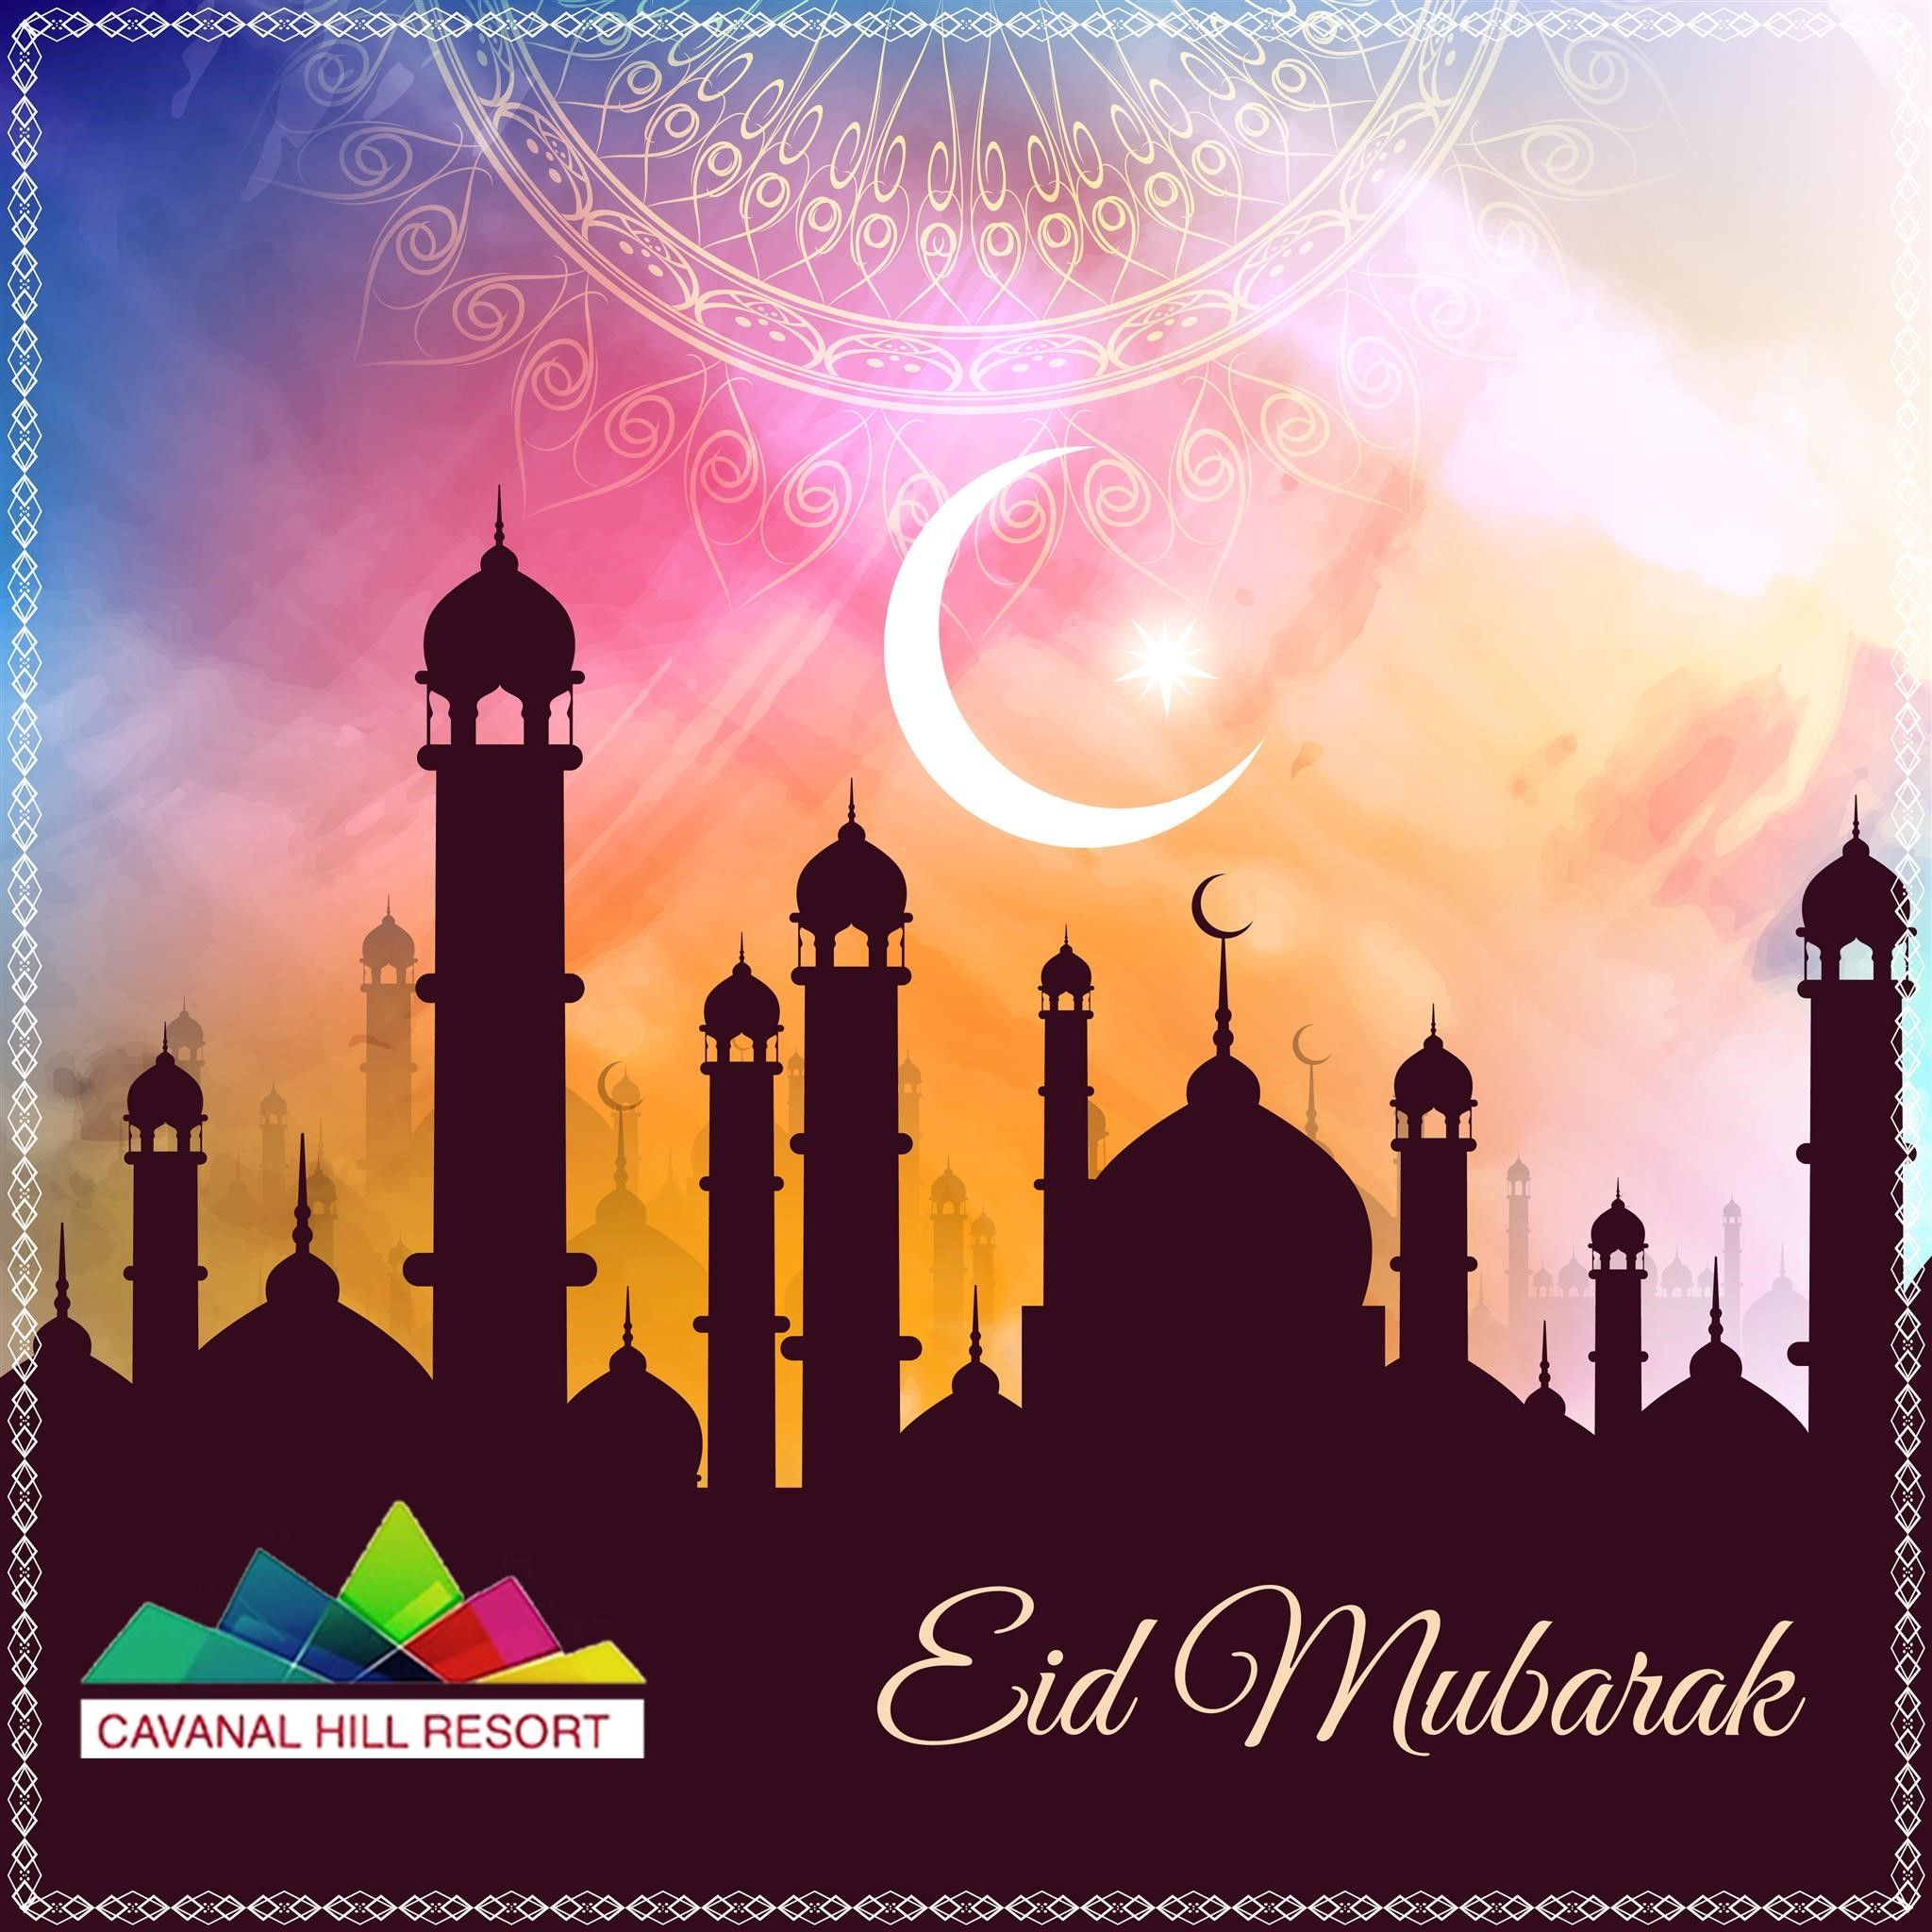 Eidmubarak May The Blessing And Guidance Of Allah Be With You And